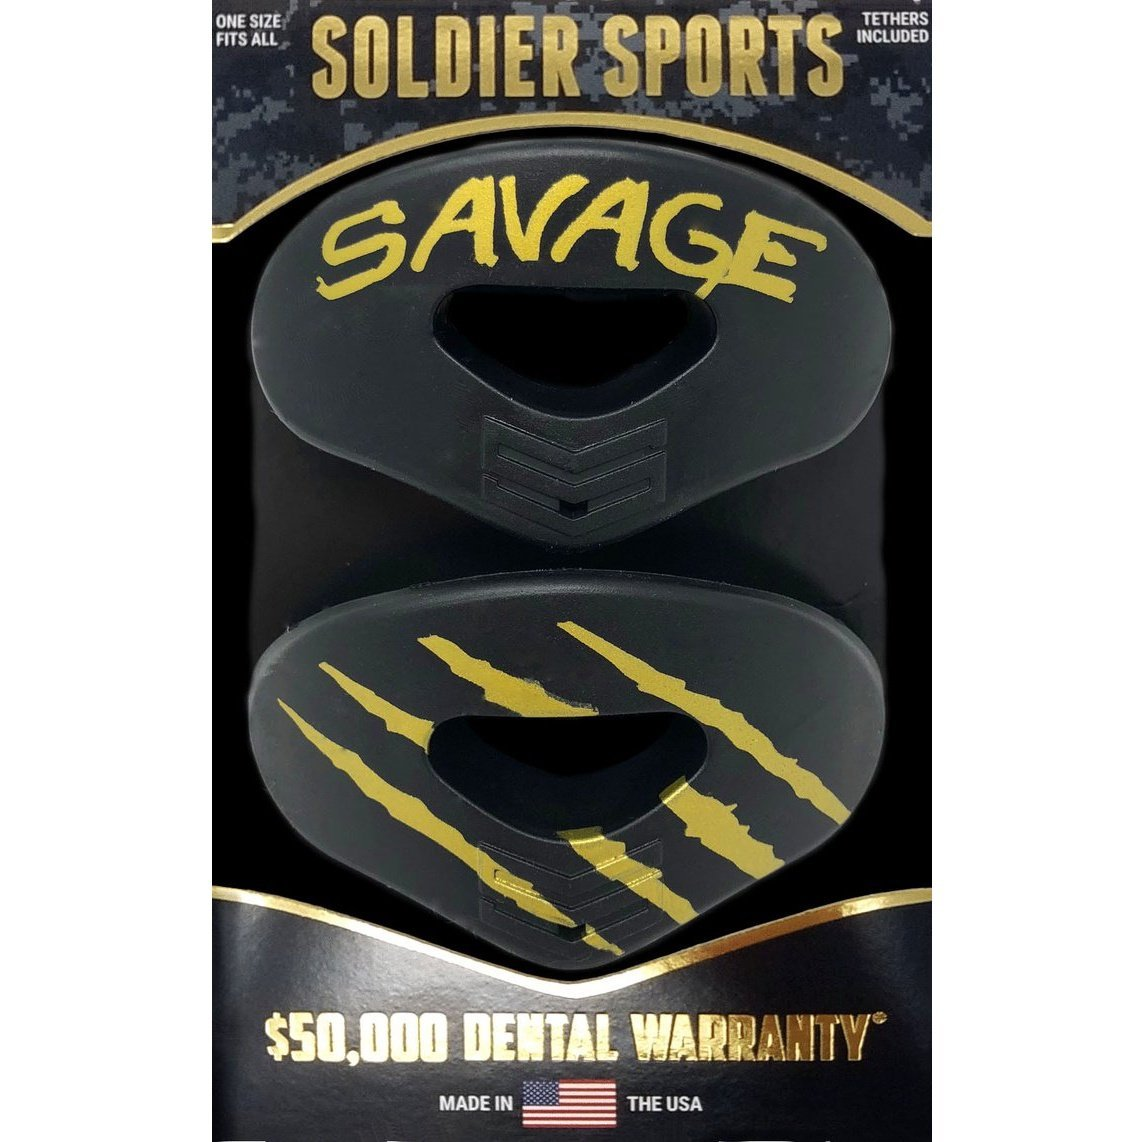 SOLDIER SPORTS MOUTHGUARD 2 PACK LIP PROTECTOR BLACK/GOLD $15.99 - MSM FIGHT SHOPSOLDIER SPORTS